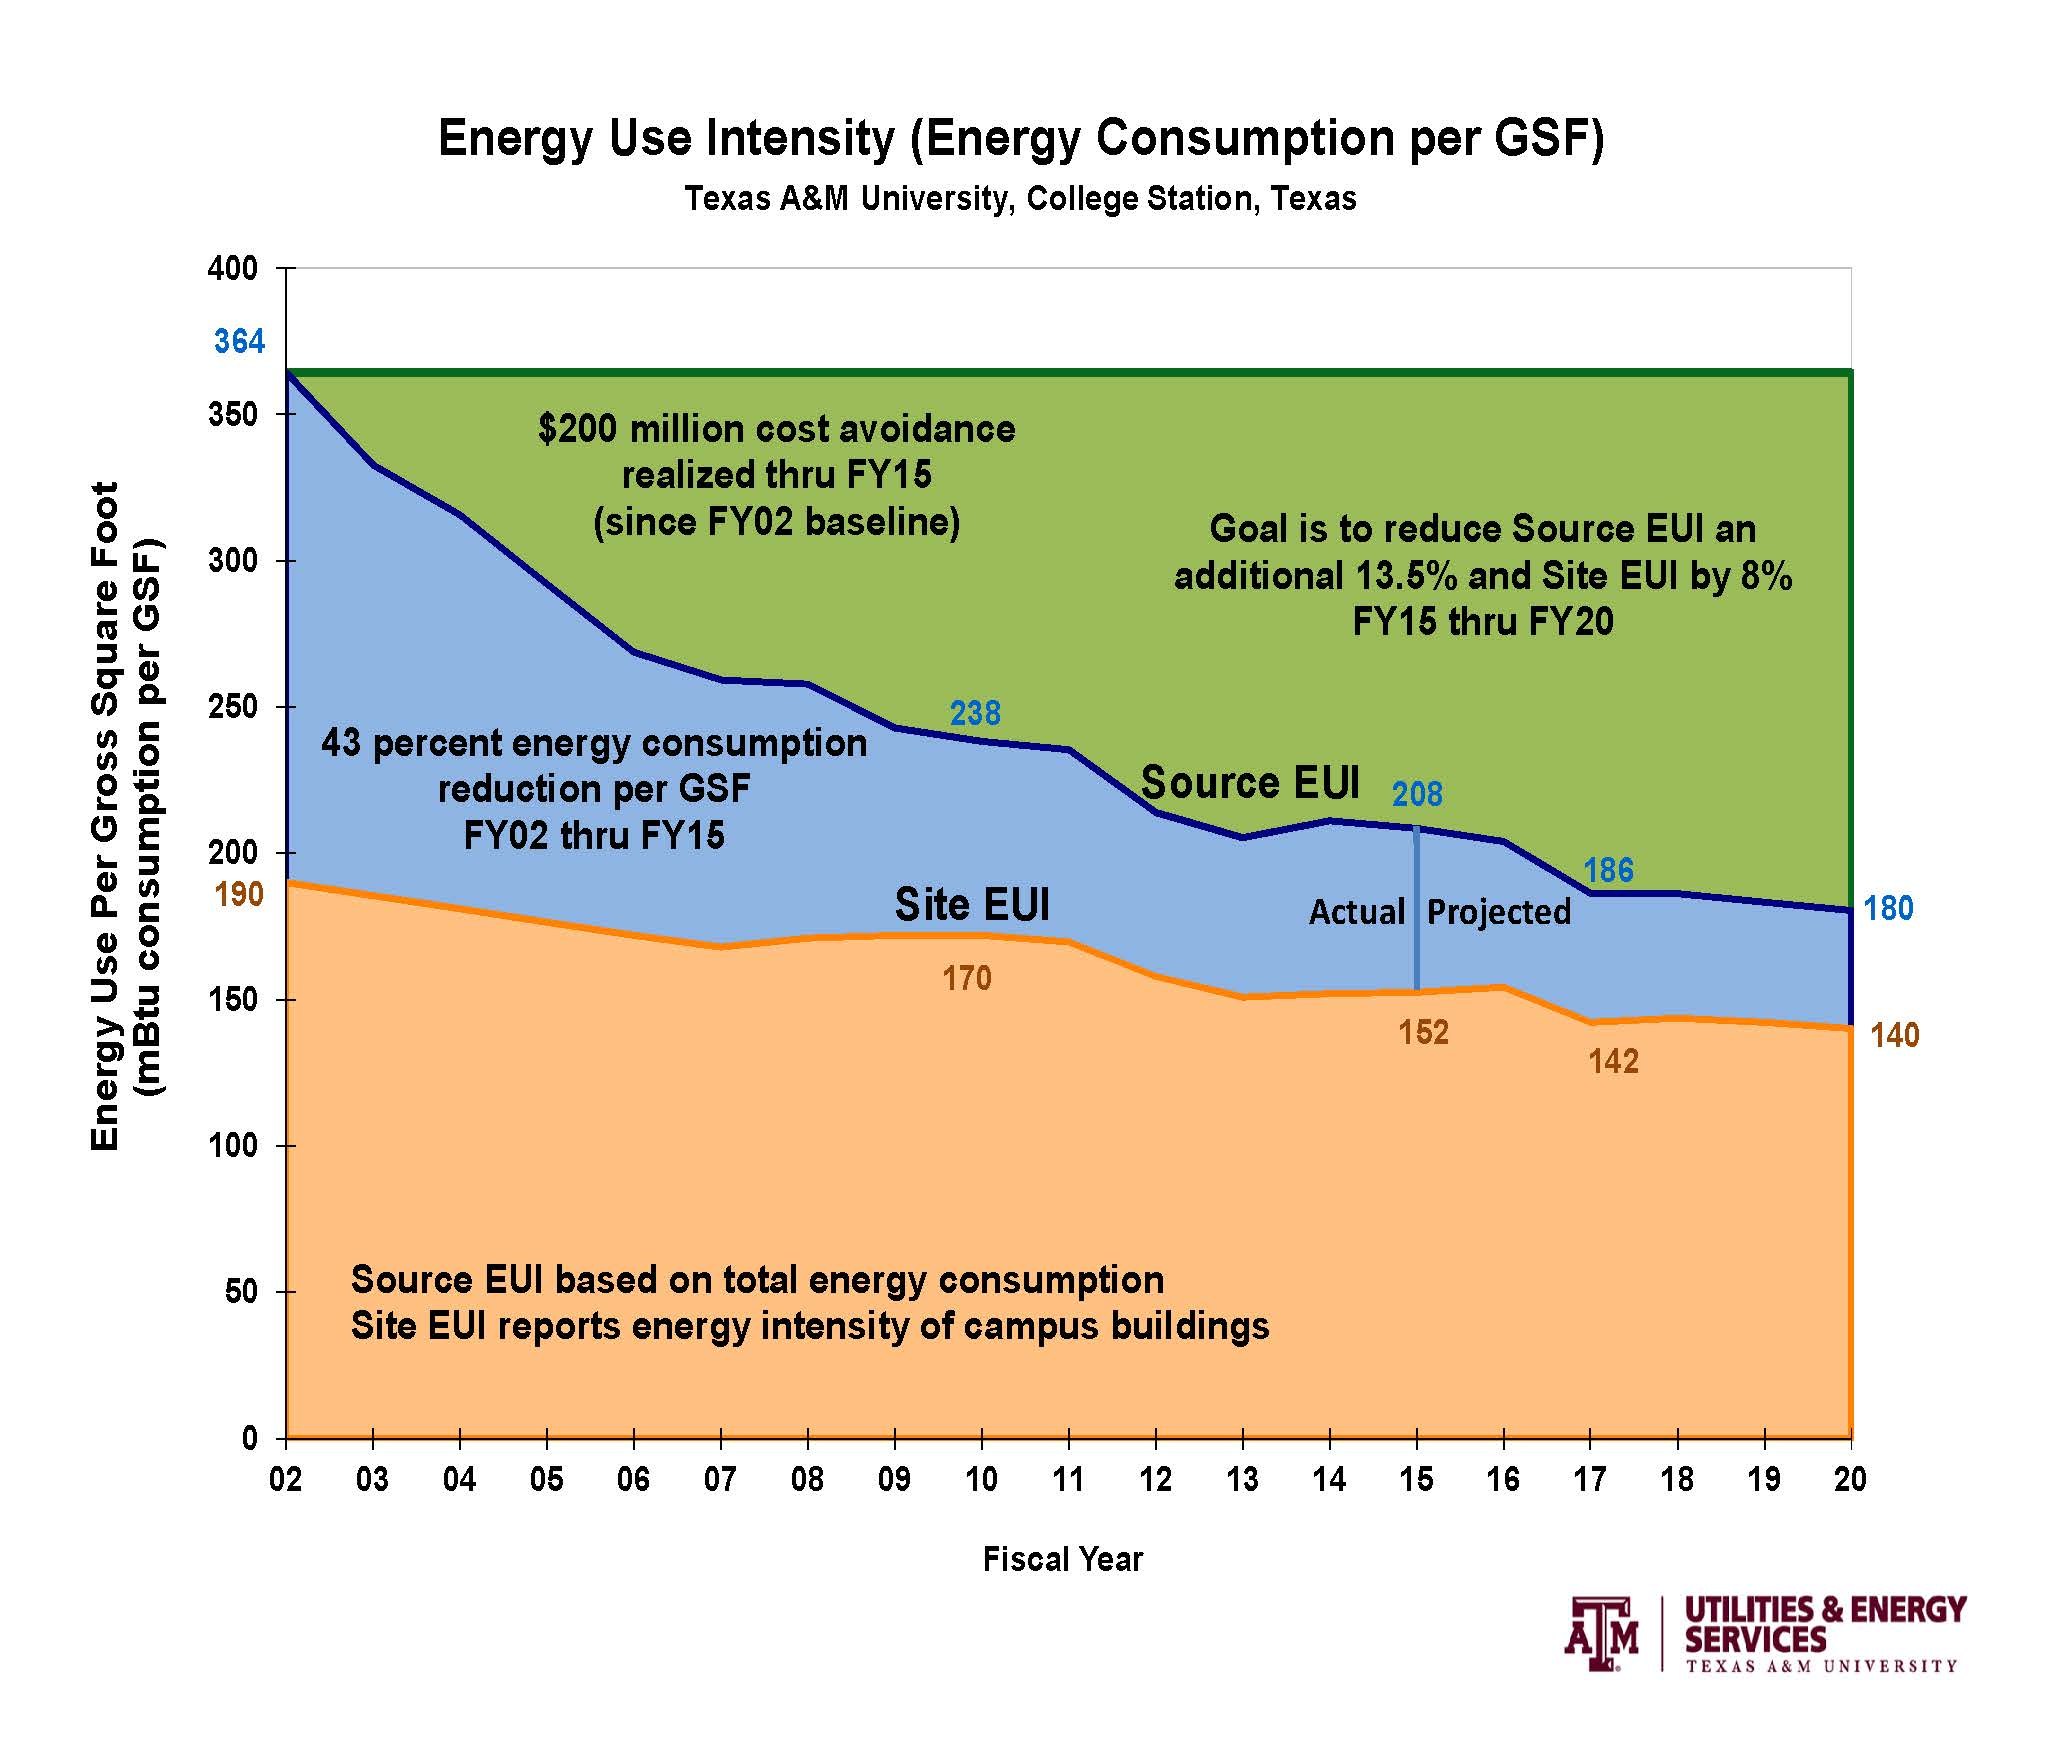 UES FY17 Energy Use Index